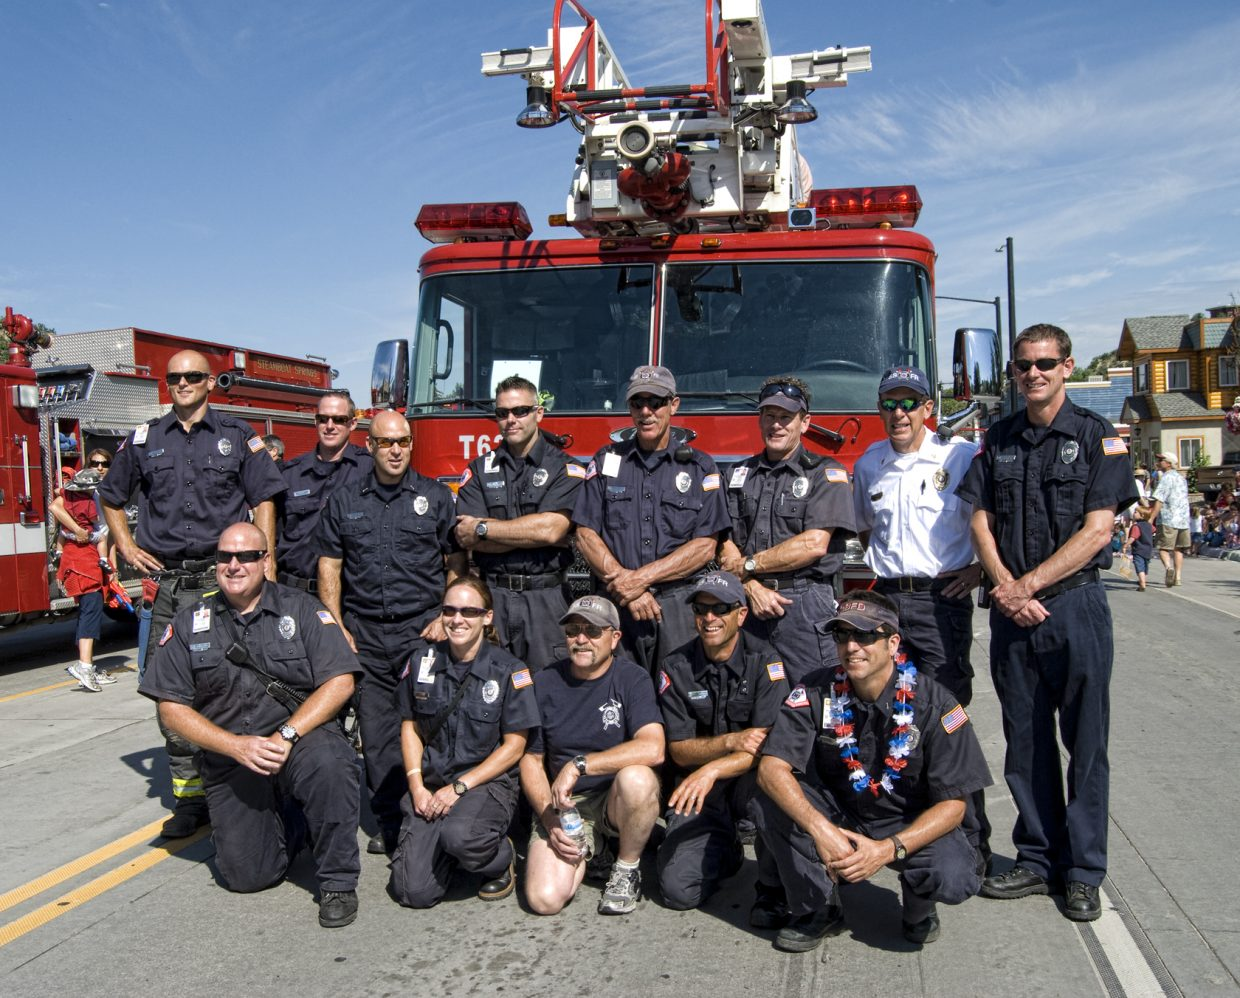 Steamboat Springs firefighters line up for a photo during the Steamboat Fourth of July Parade in downtown Steamboat on Monday.